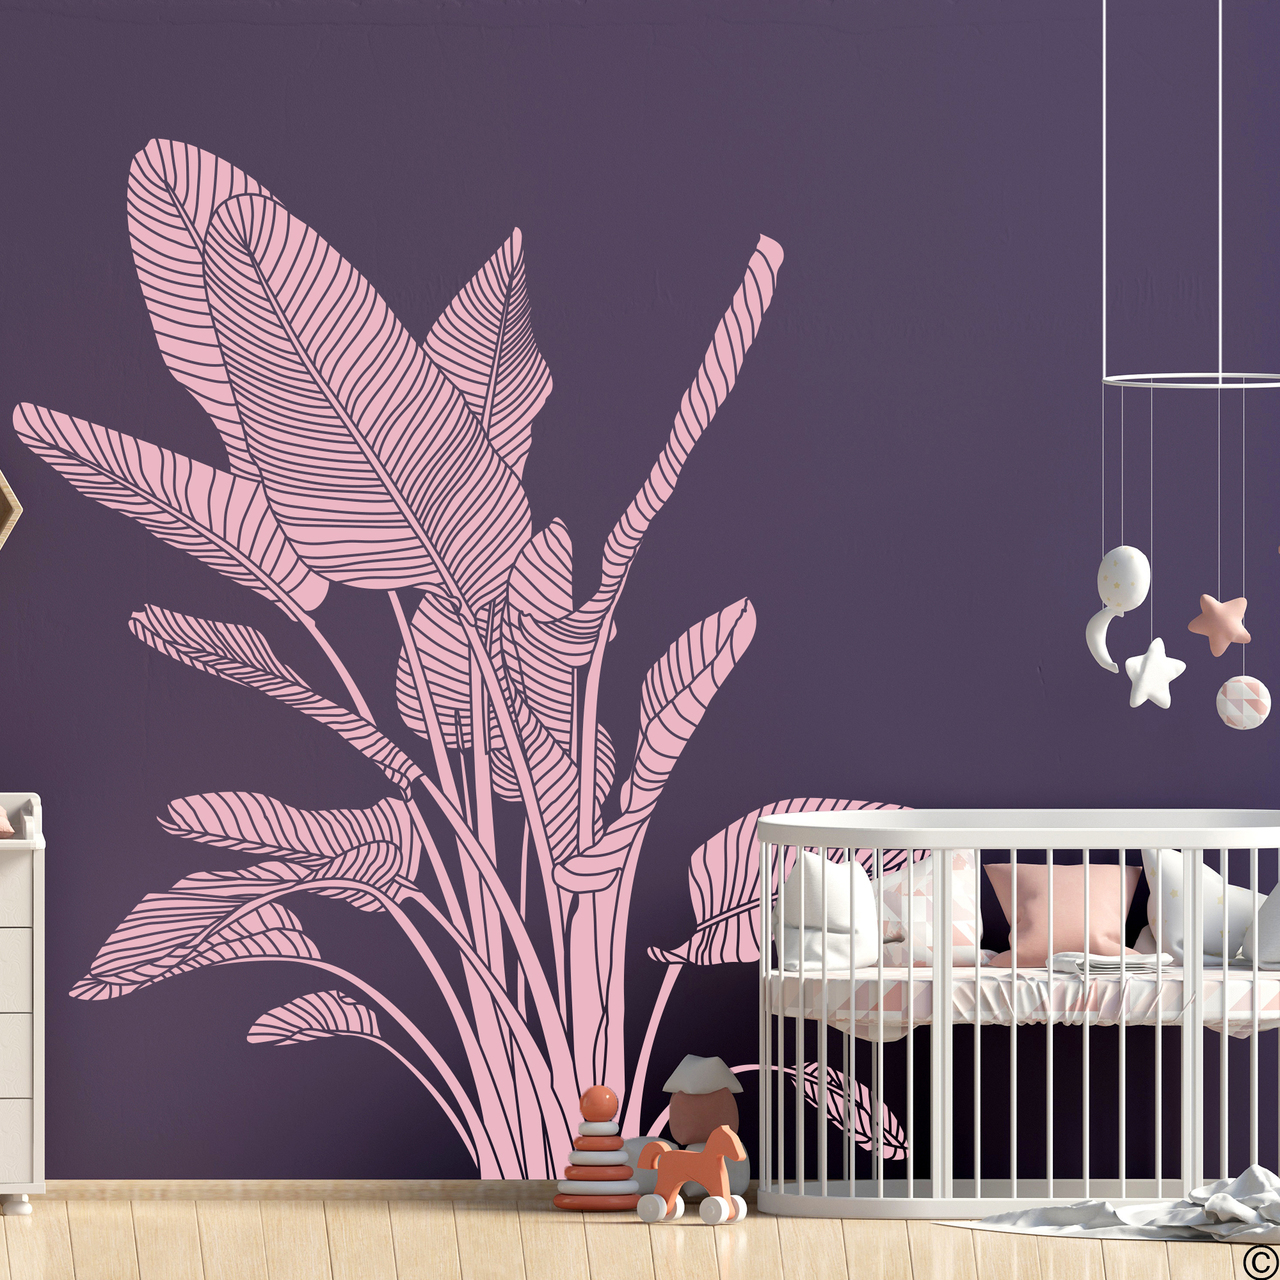 The Bird of Paradise wall decal art shown here in carnation pink vinyl color.